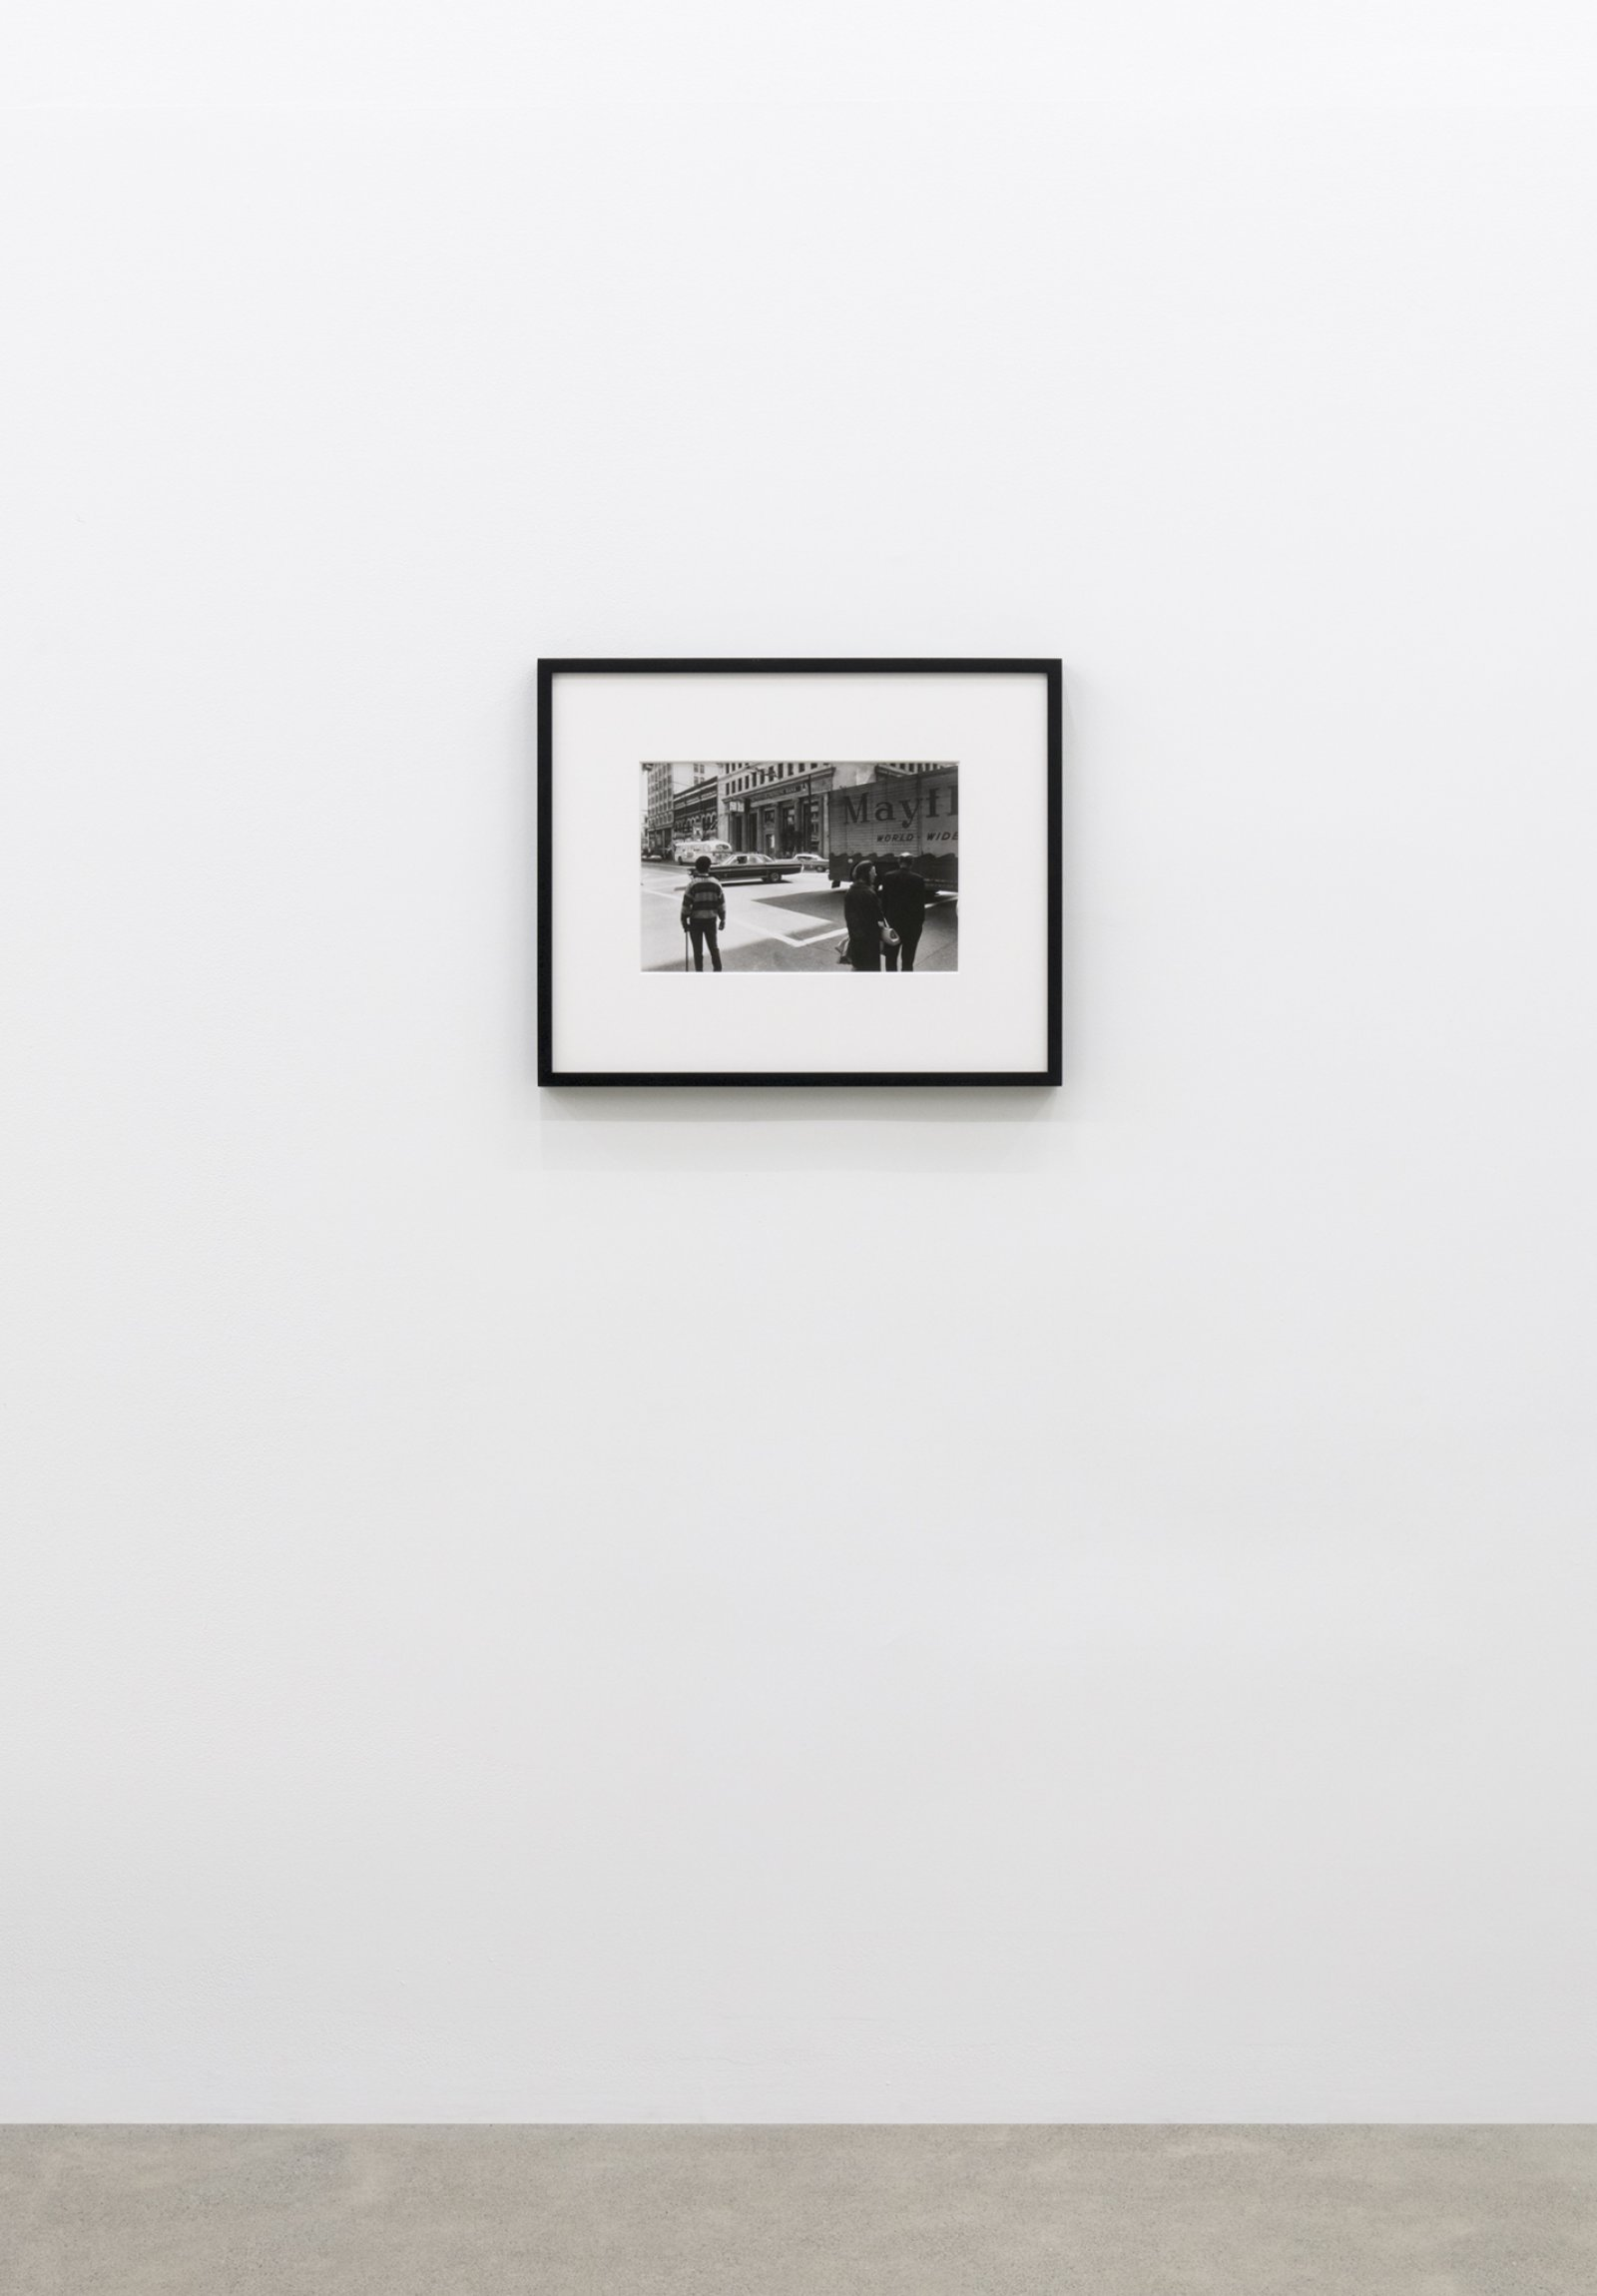 Ian Wallace, Intersection 1970, 1970–2008, black and white photograph, 10 x 14 in. (24 x 36 cm) by Ian Wallace